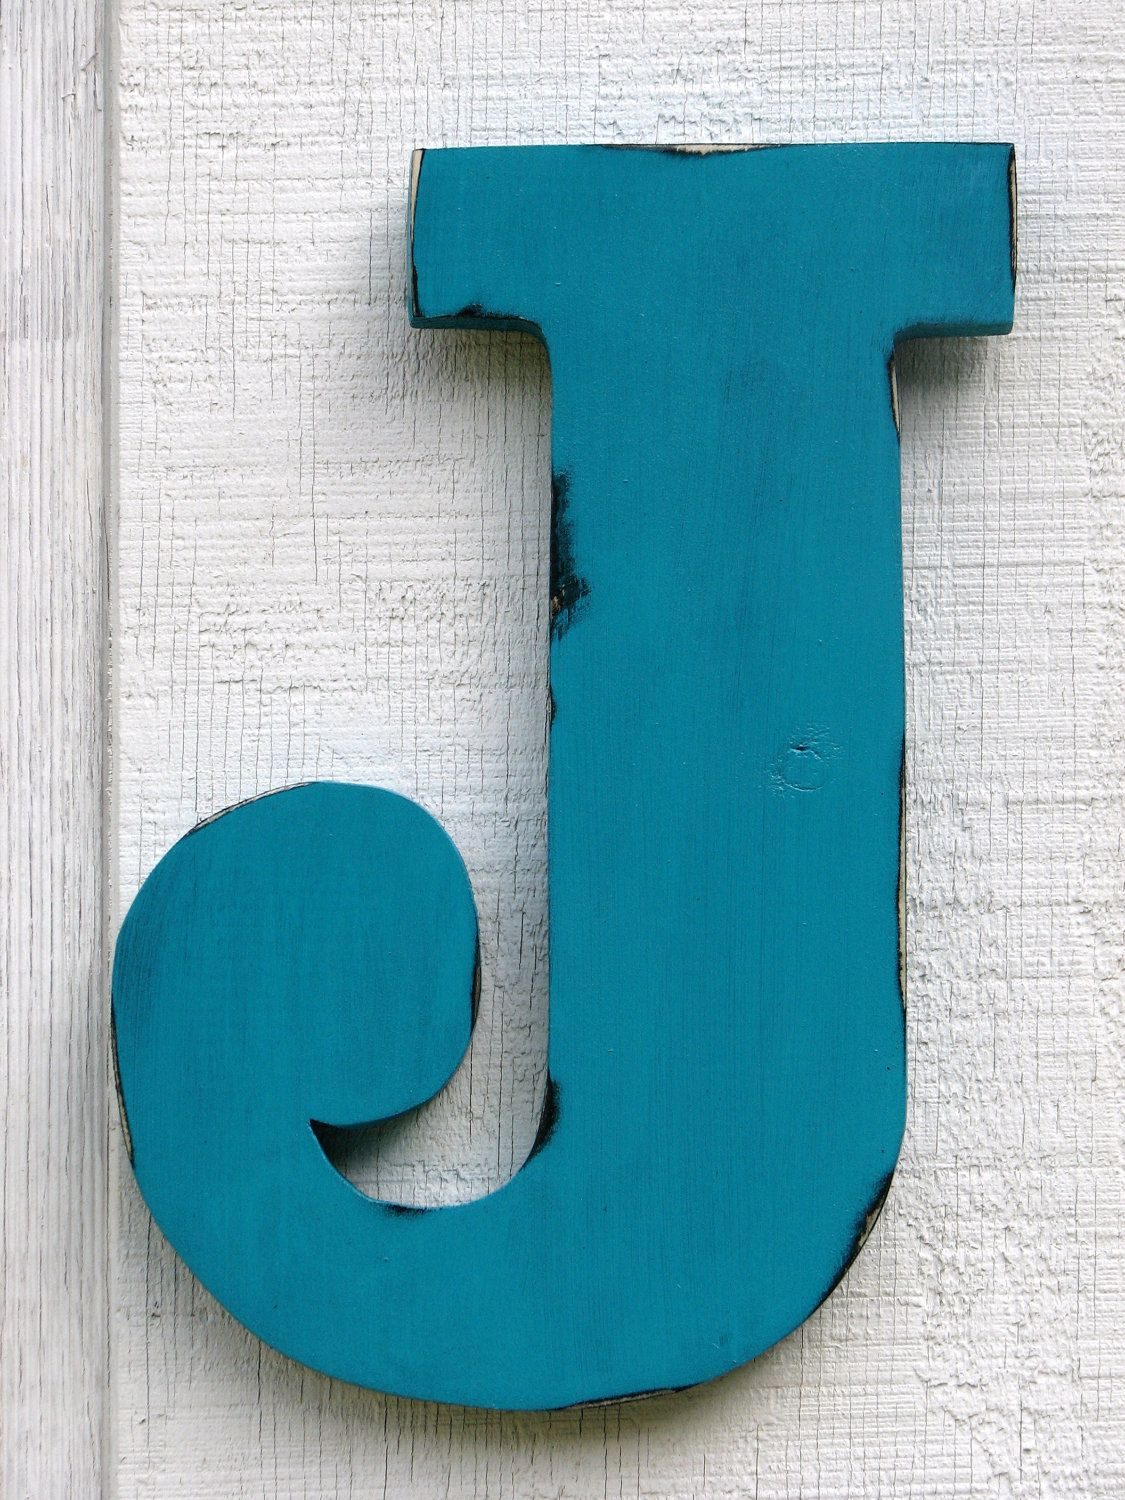 Large Letter J For Wall Amazing Large Wall Wood Letter 3 Foot Tall Wedding Decor Photo Prop You Inspiration Design